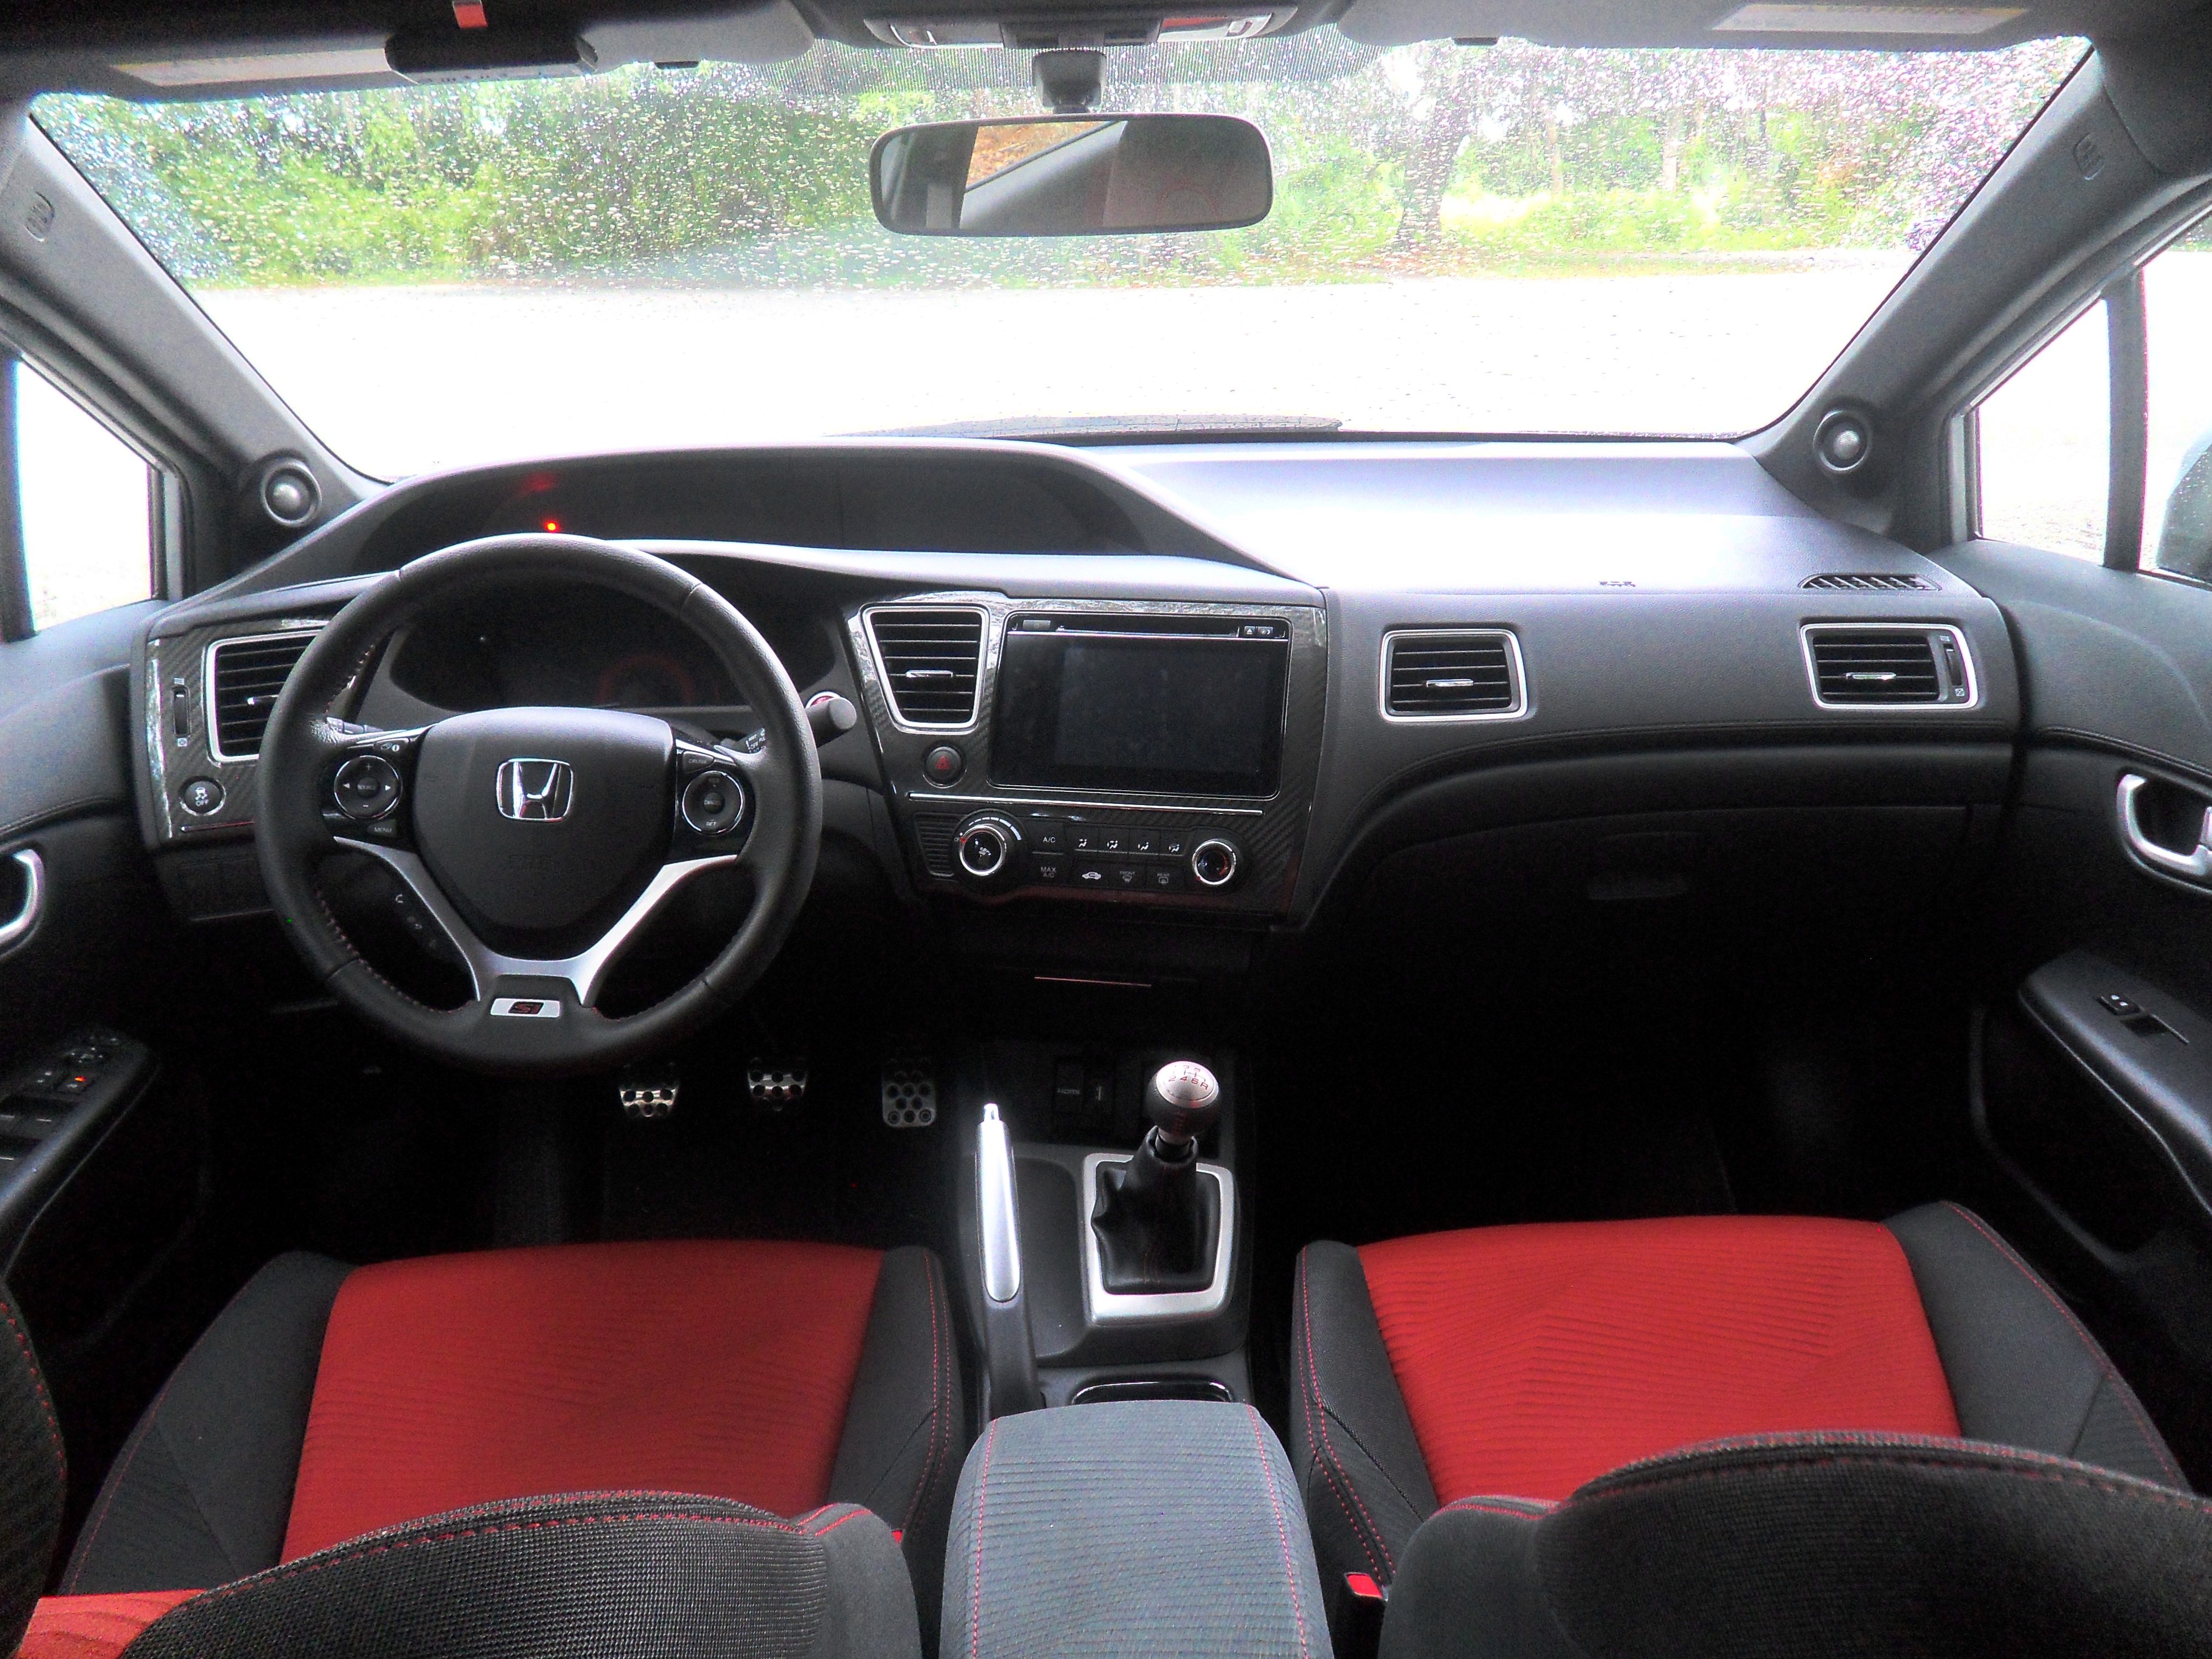 2014 Honda Civic Si Sedan   Driven | Top Speed. »